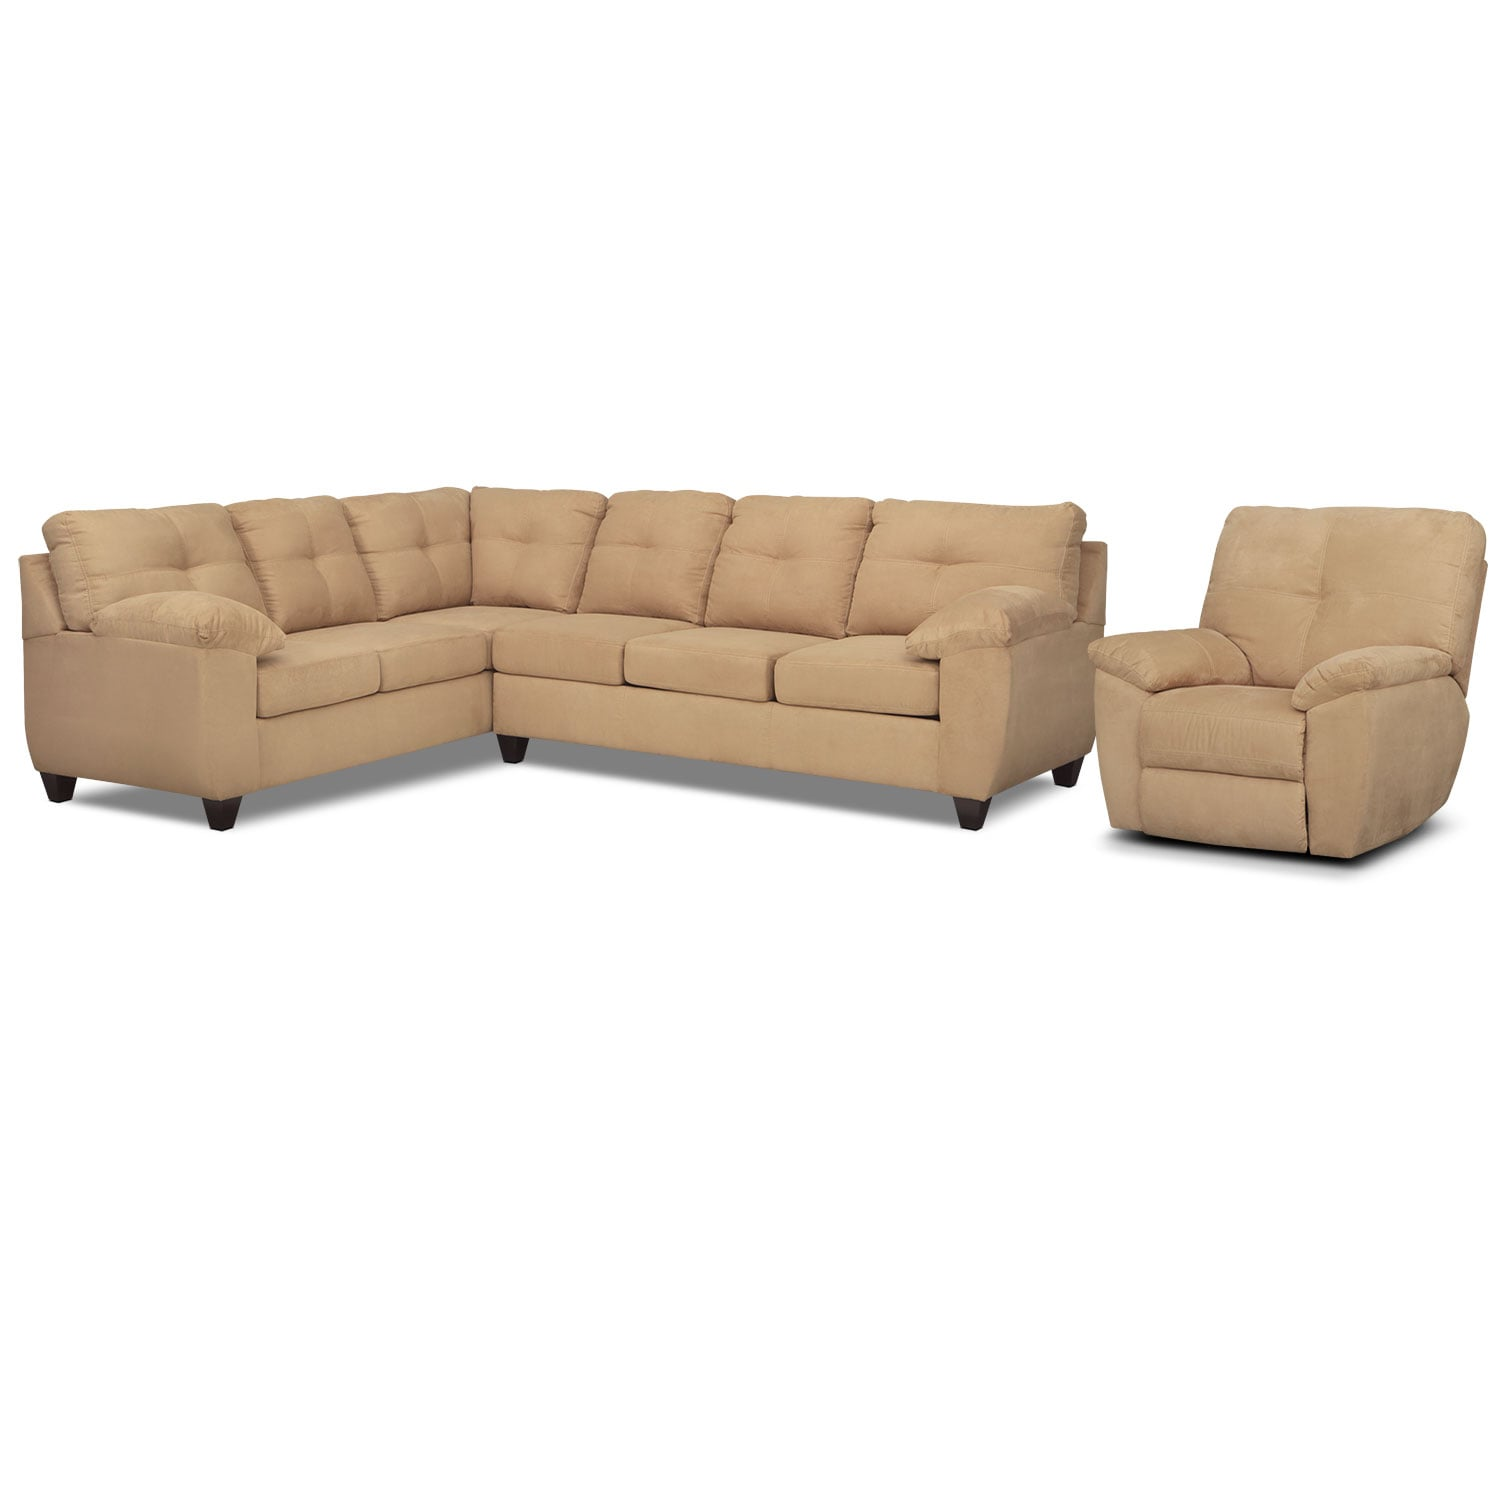 Rialto 2-Piece Sectional with Left-Facing Corner Sofa and Glider Recliner Set - Camel